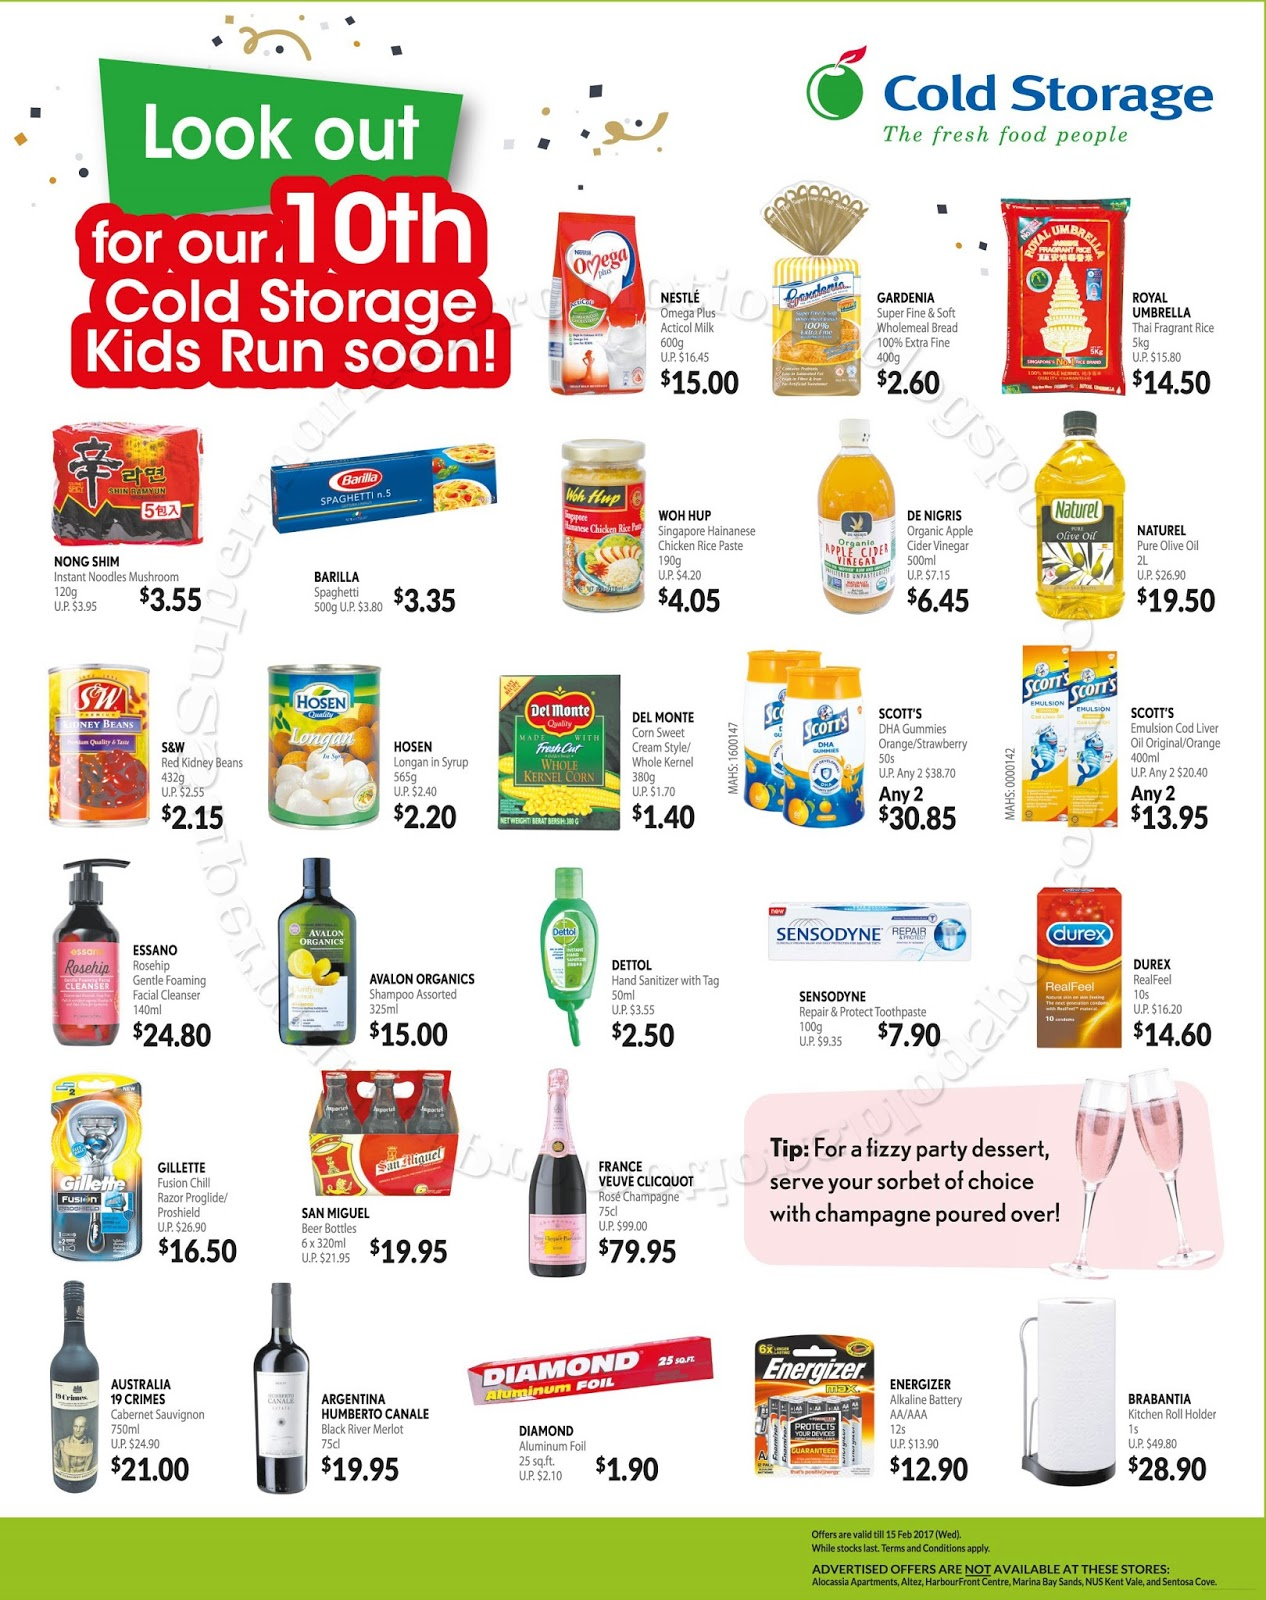 Nong Shim instant noodles mushroom Barilla spaghetti Del Monte corn sweet cream style/ whole kernel Essano rosehip gentle foaming facial cleanser ...  sc 1 st  Supermarket Promotions & Cold Storage My Favourite Brands Till 15 February 2017 | Supermarket ...